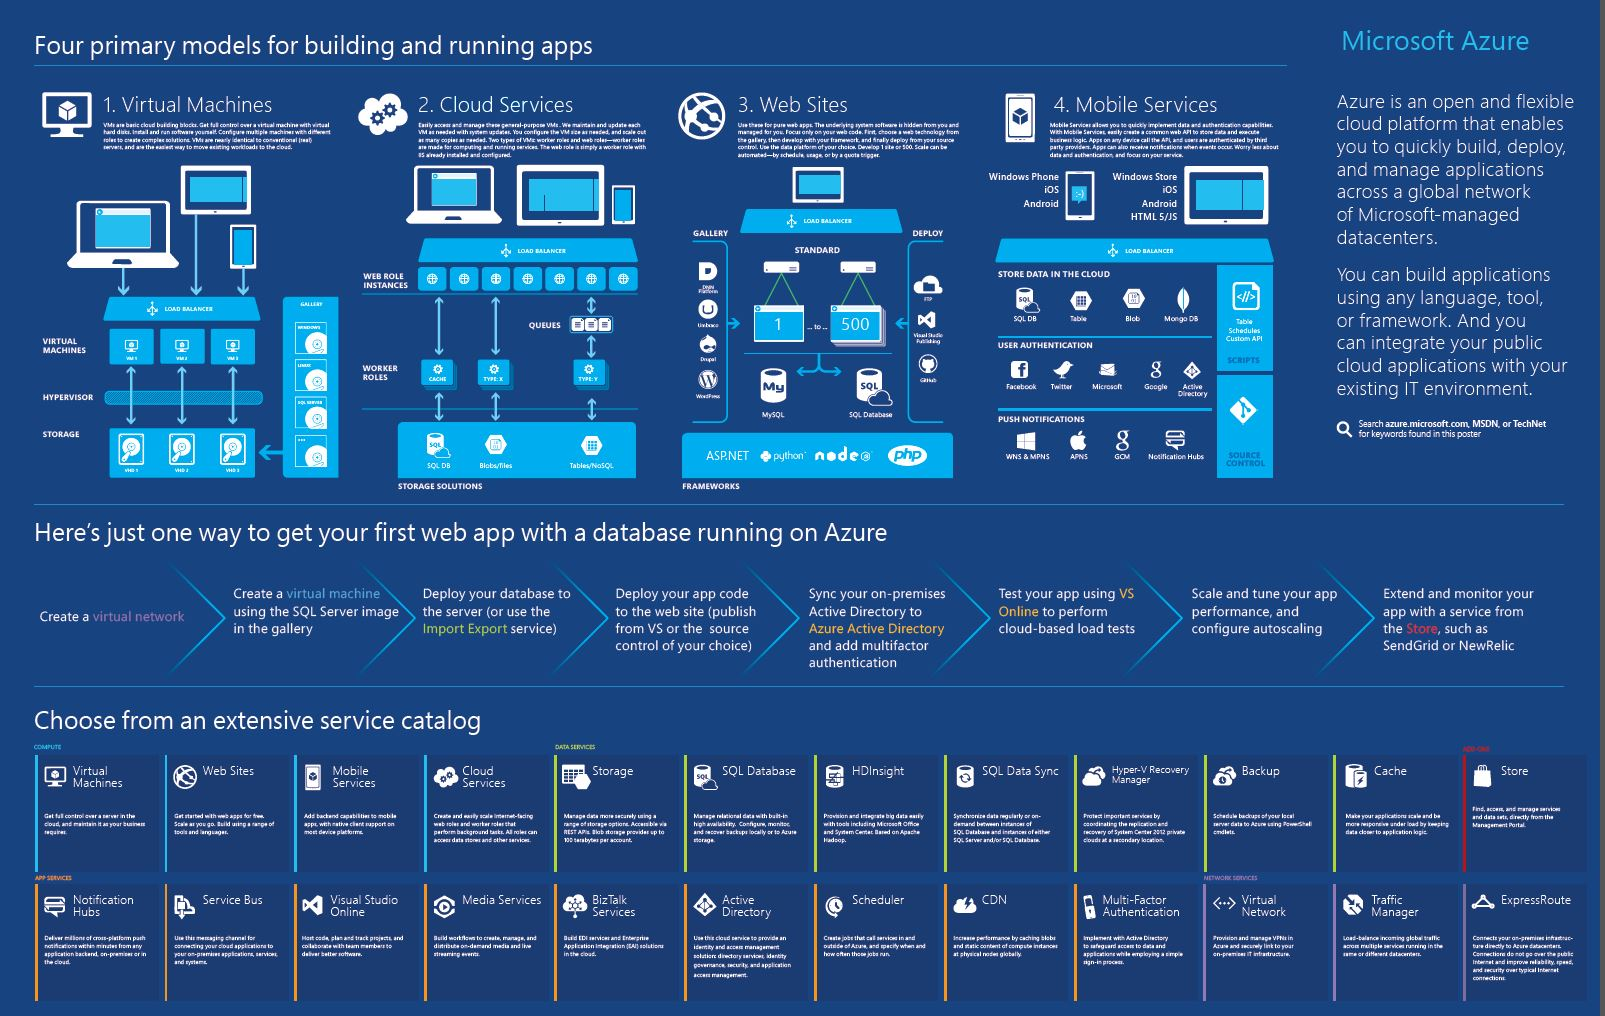 Azure Services Overview - Source Microsoft